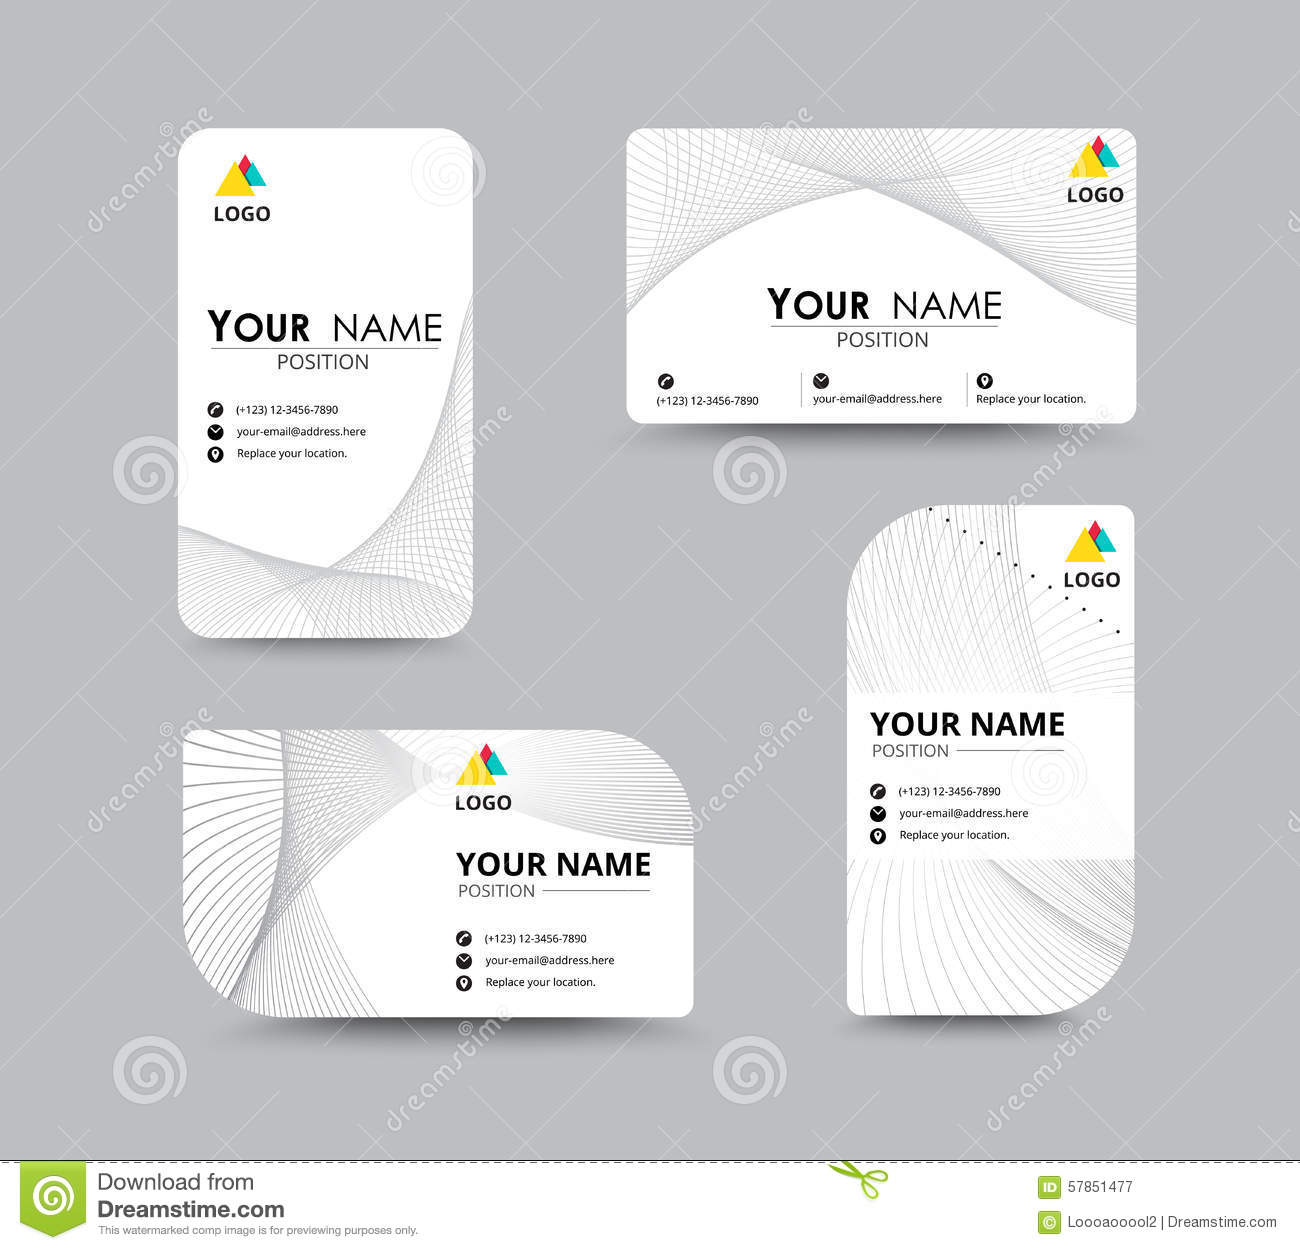 Abstract Business Card Template With Sample Name Position. City Stock Vector - Image 57851477